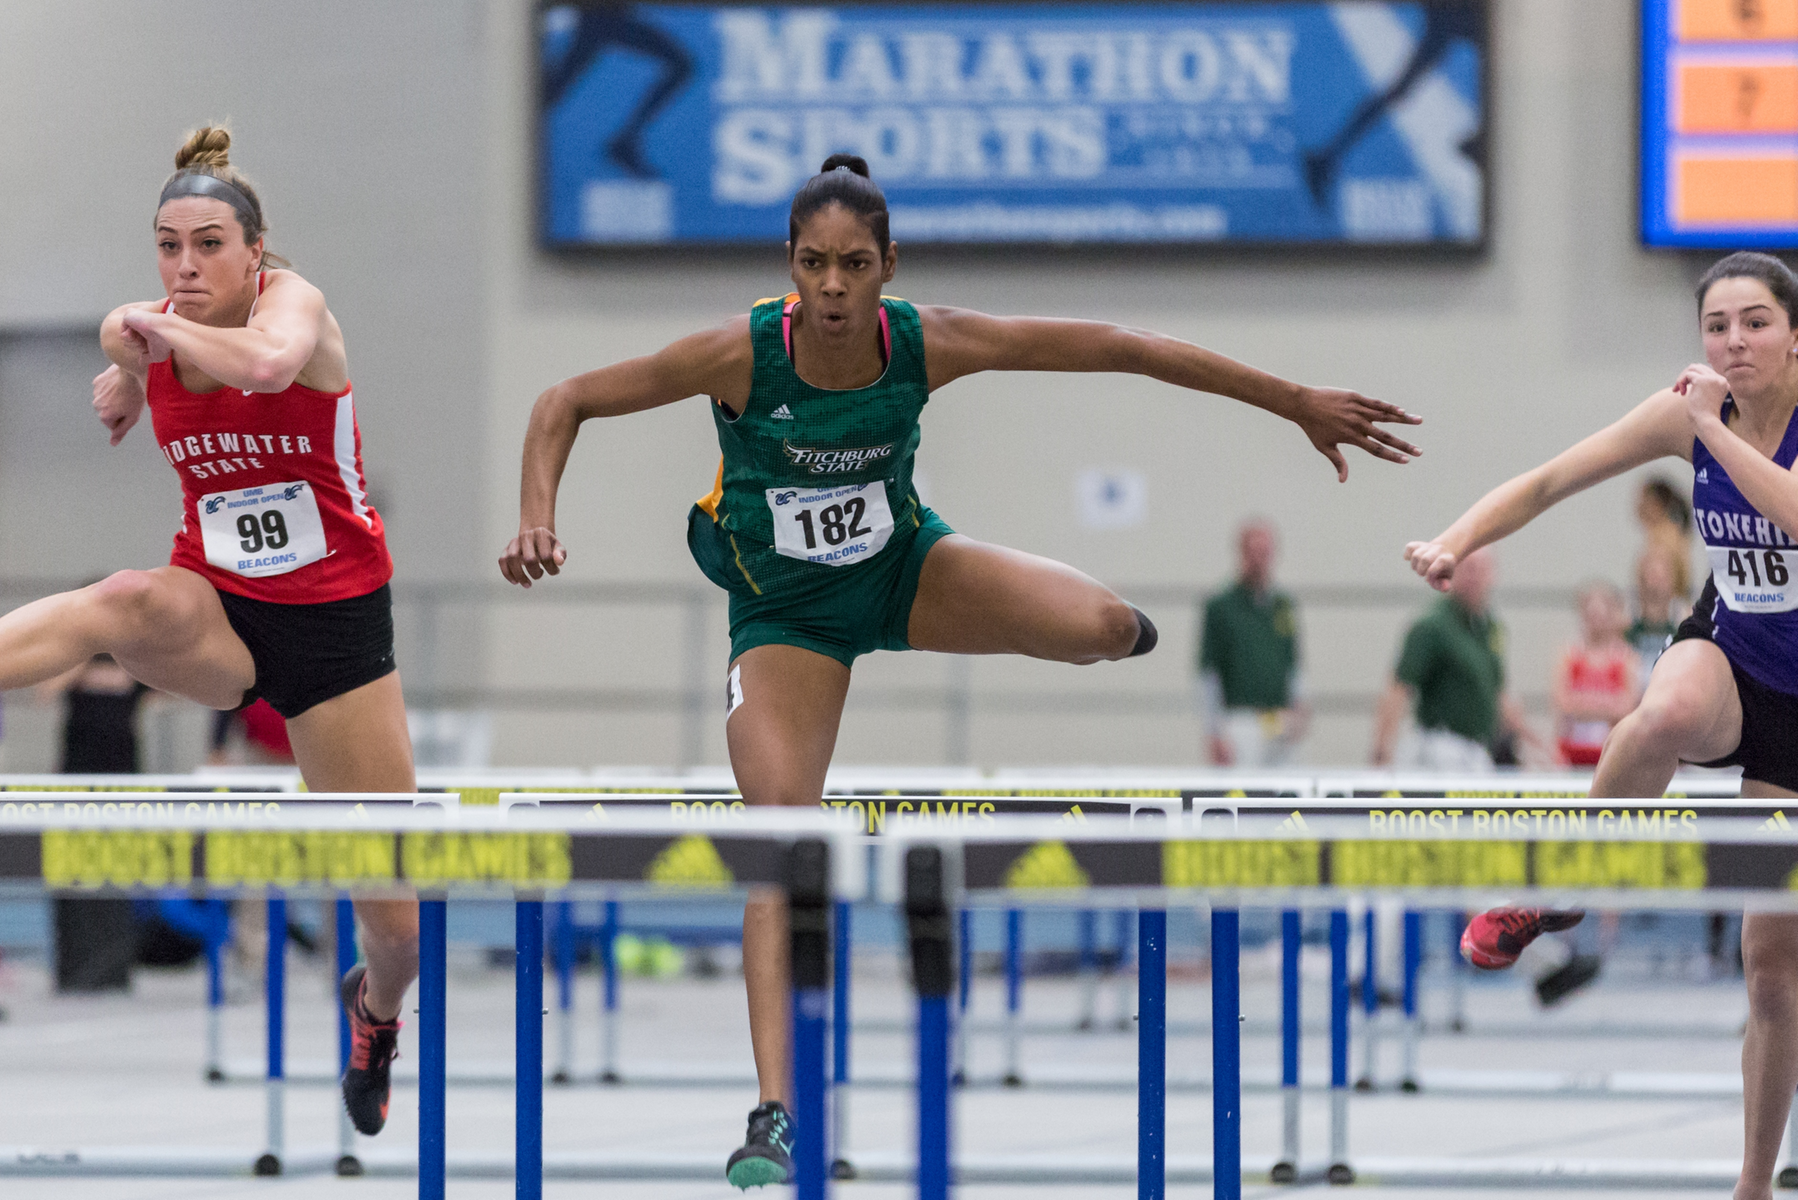 Fitchburg State Opens At UMass Boston Open Invite